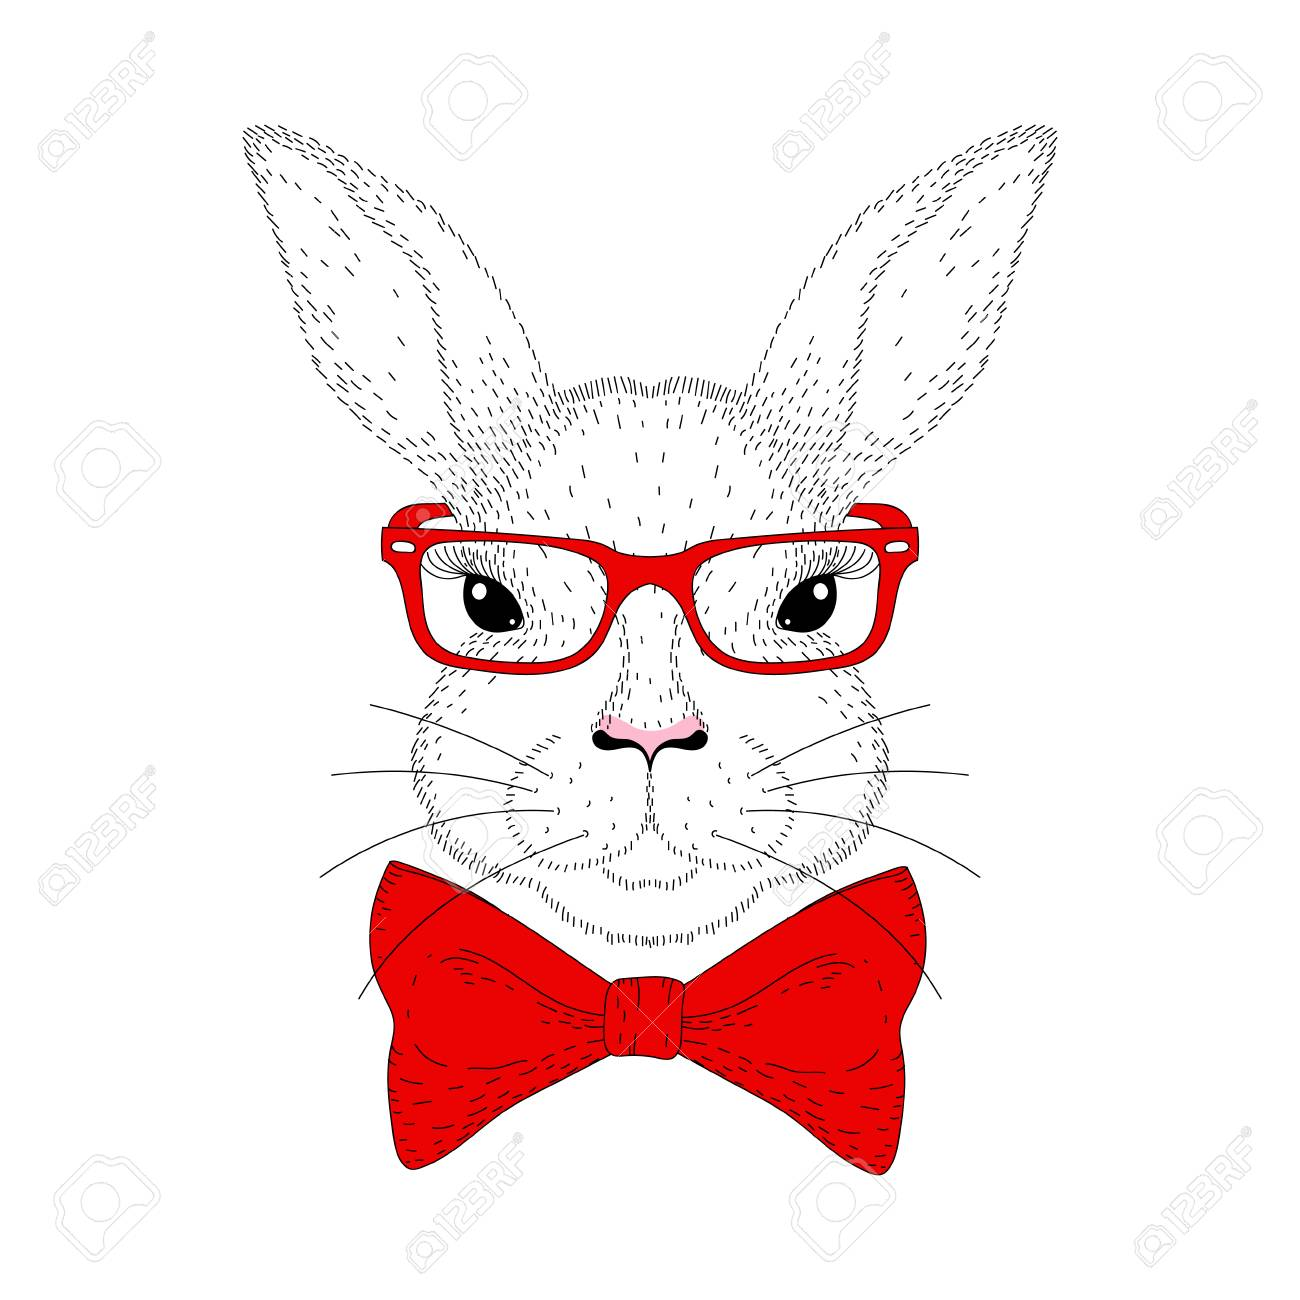 1300x1300 Vector Cute Bunny Portrait. Hand Drawn Rabbit Head With Red Bow